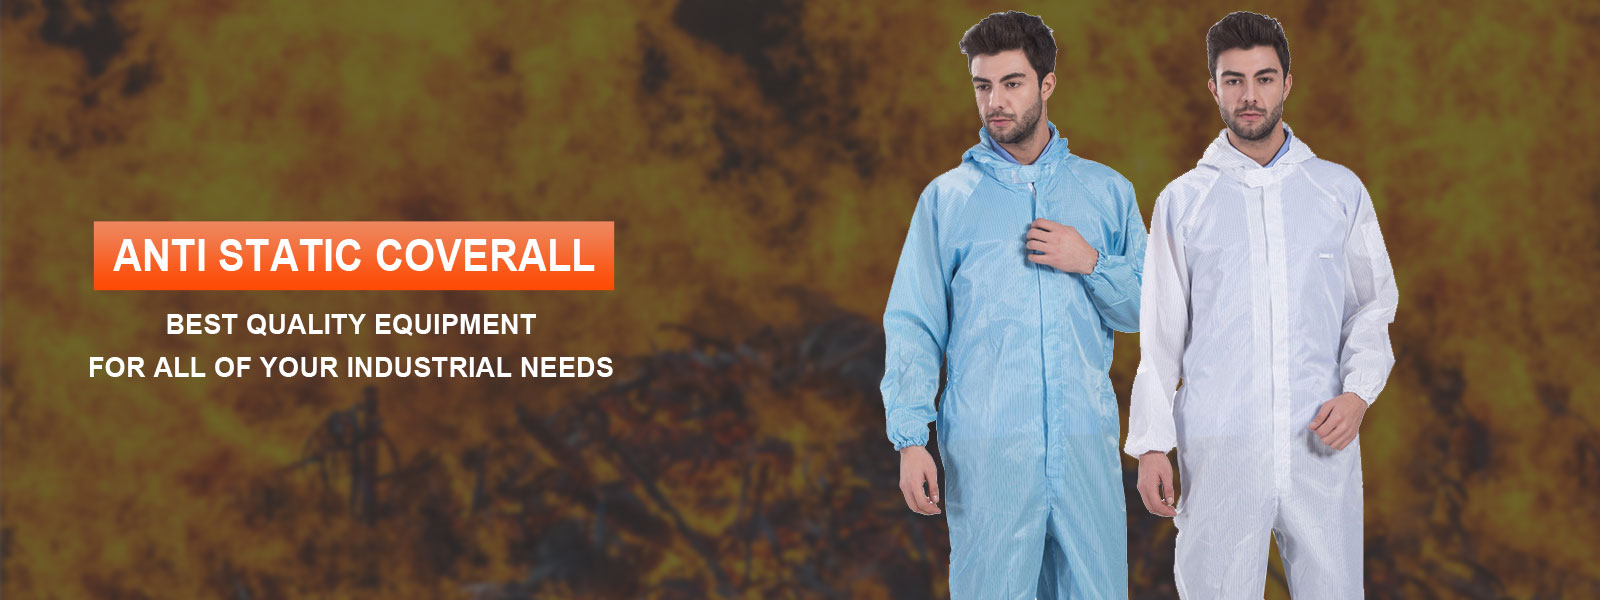 Anti Static Coverall Manufacturers in Punjab